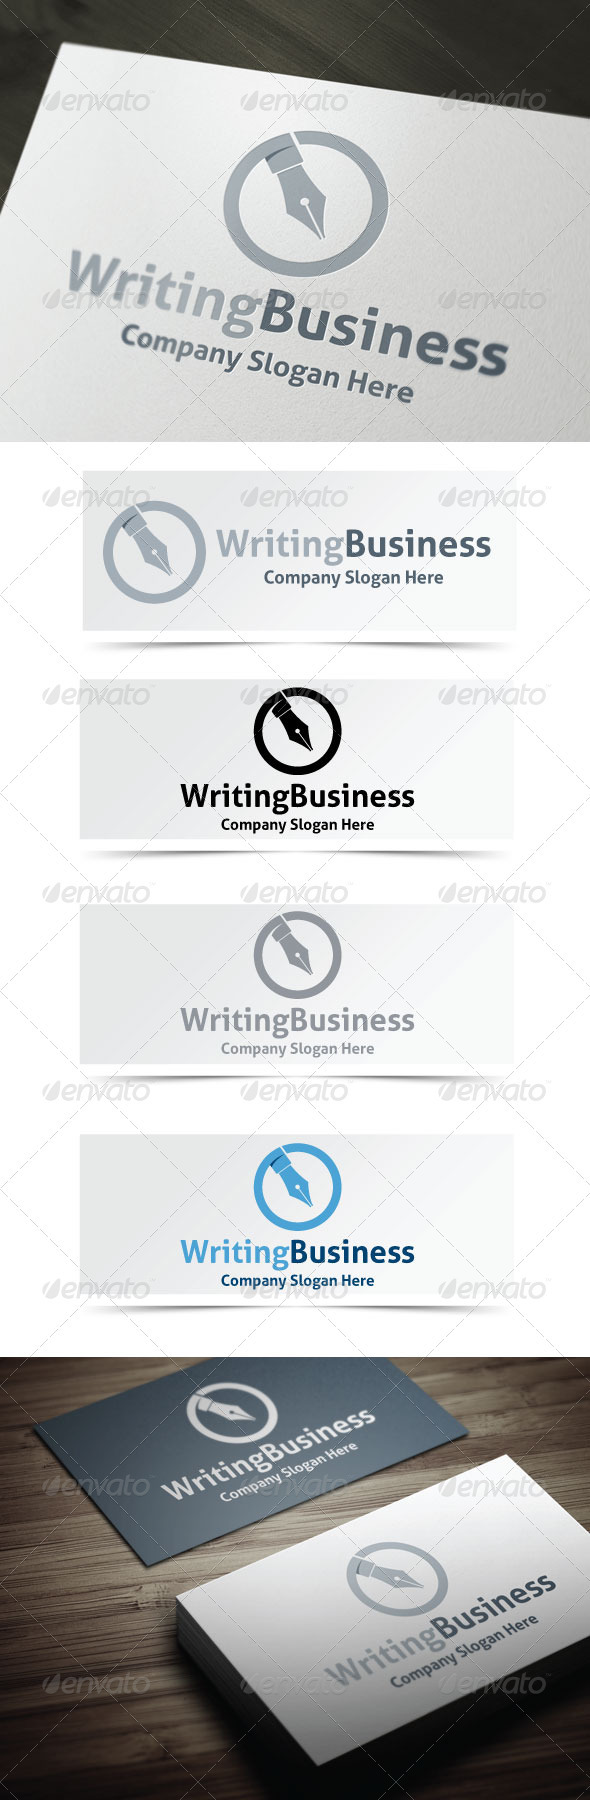 Writing Business - Objects Logo Templates